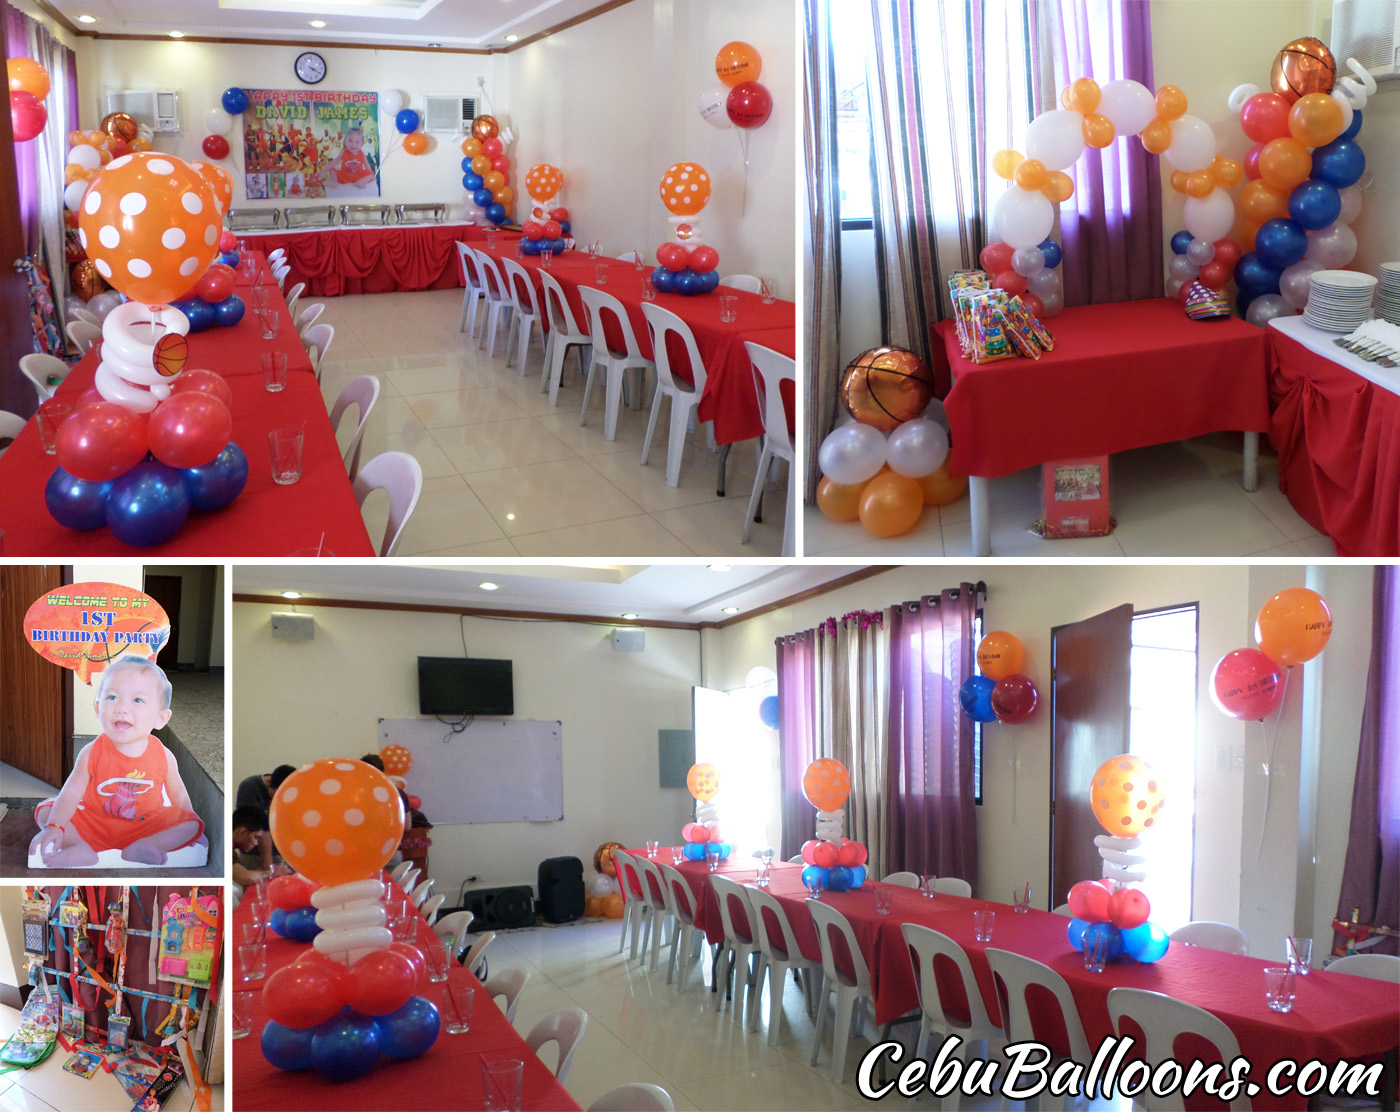 decoration themes for birthday parties ; Basketball-Theme-Birthday-Party-Package-with-Balloon-Decoration